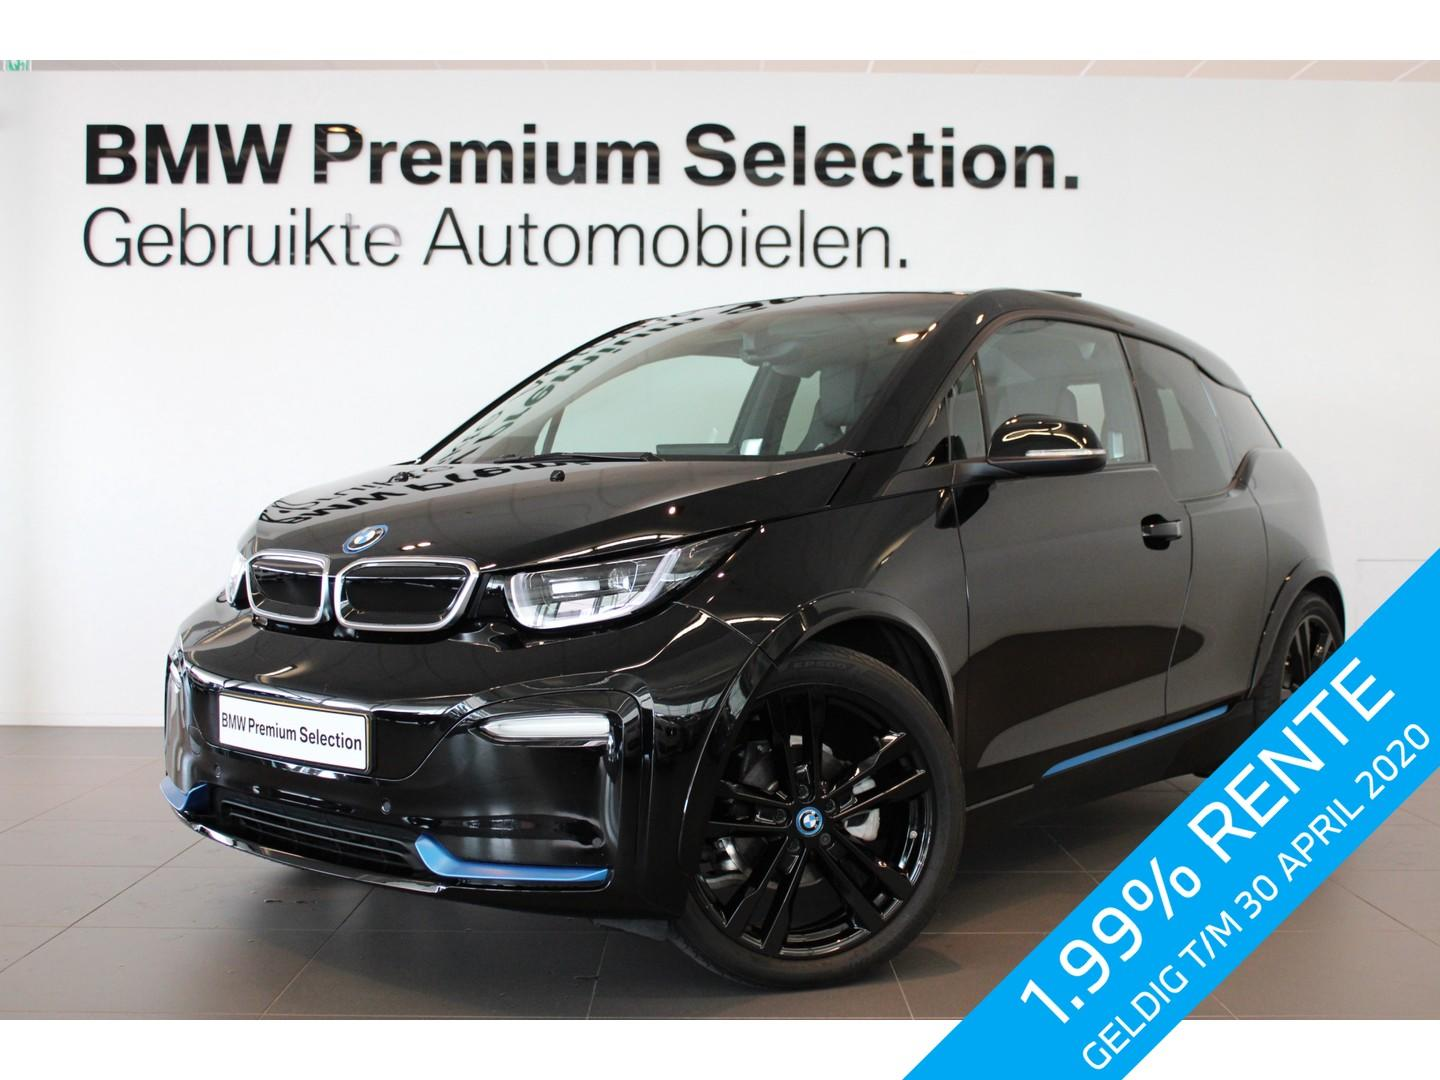 Bmw I3 S launch edition 94ah 33 kwh